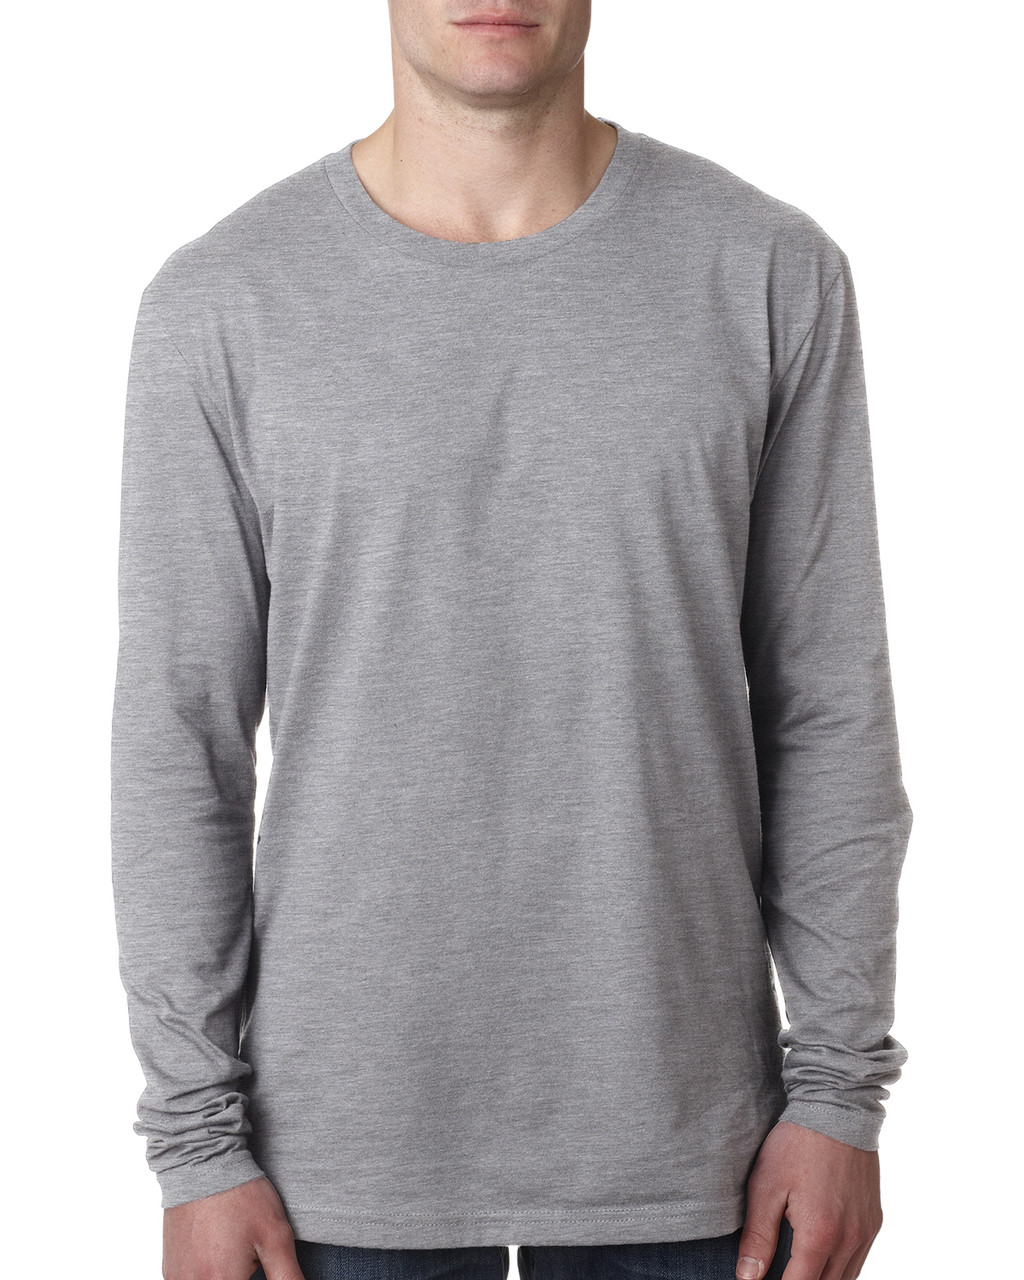 Heather Grey - N3601 Next Level Men's Premium Fitted Long Sleeve Crew Tee | Blankclothing.ca